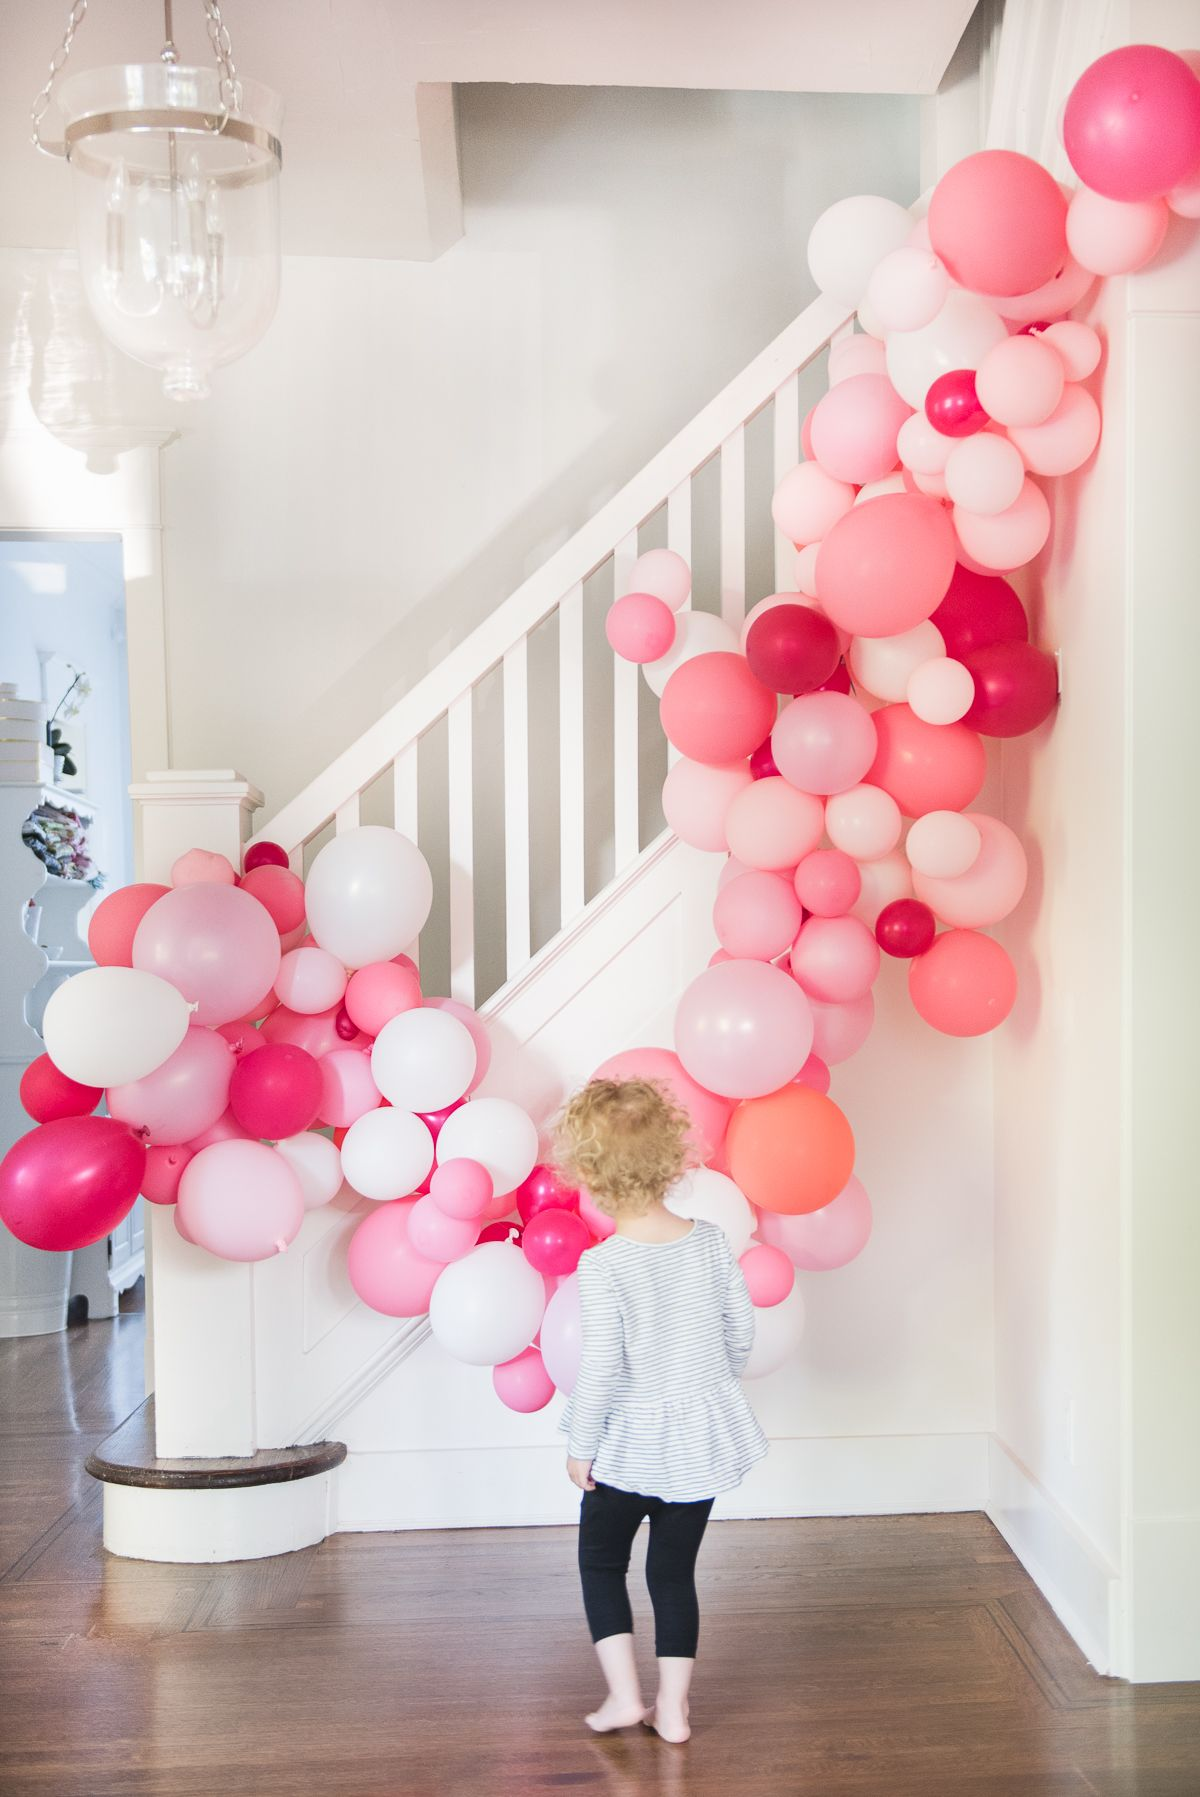 Easy DIY Balloon Arch Tutorial Without chicken